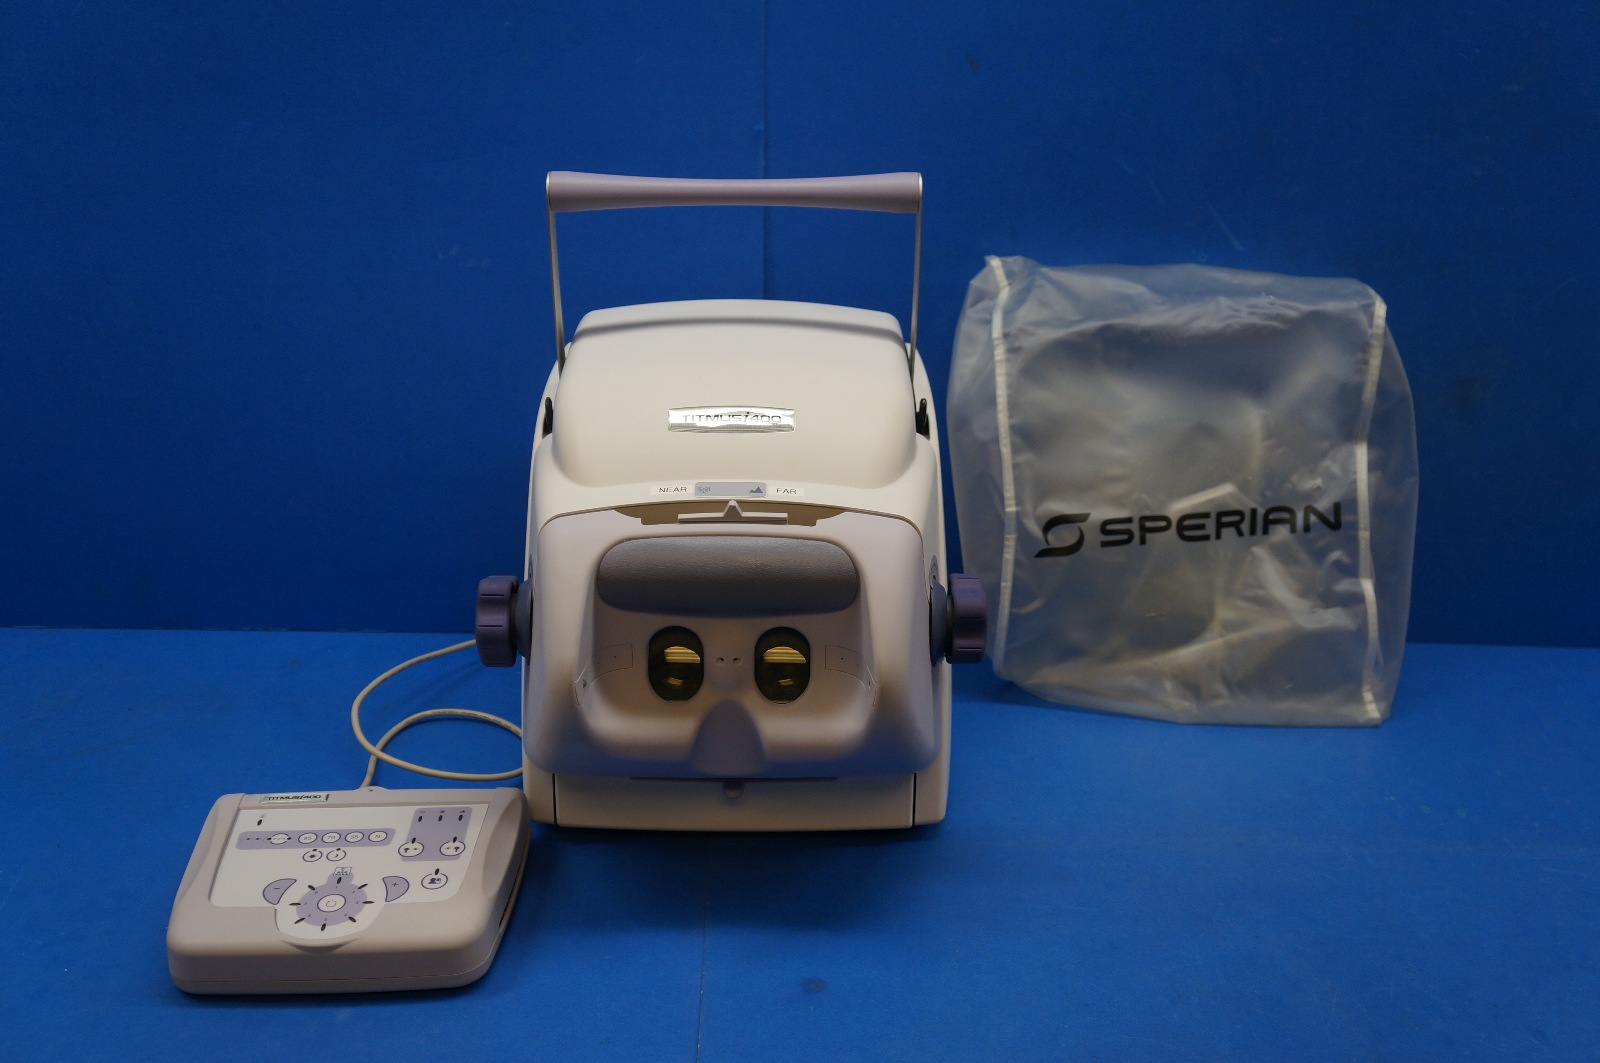 sperian titmus i400 vision screener with membrane control panel ebay rh ebay com Titmus Training Manual Titmus Training Manual